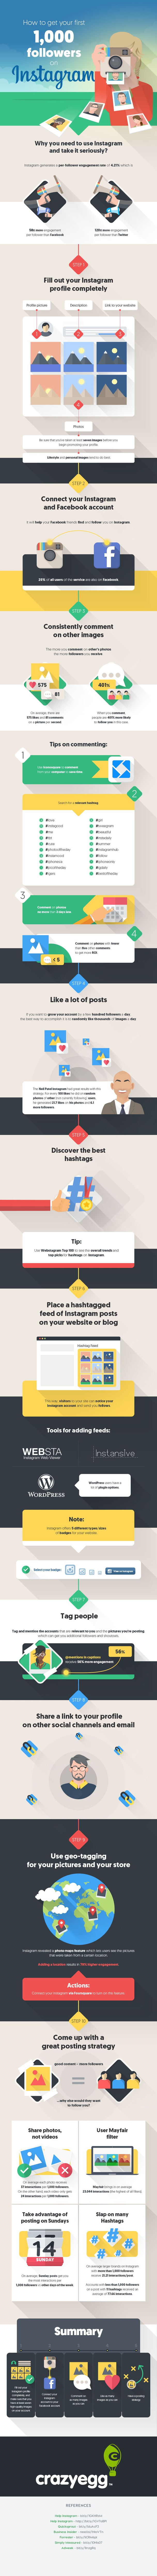 How to Get More Followers on Instagram: A Guide to Earning Your First 1,000 Followers - infographic